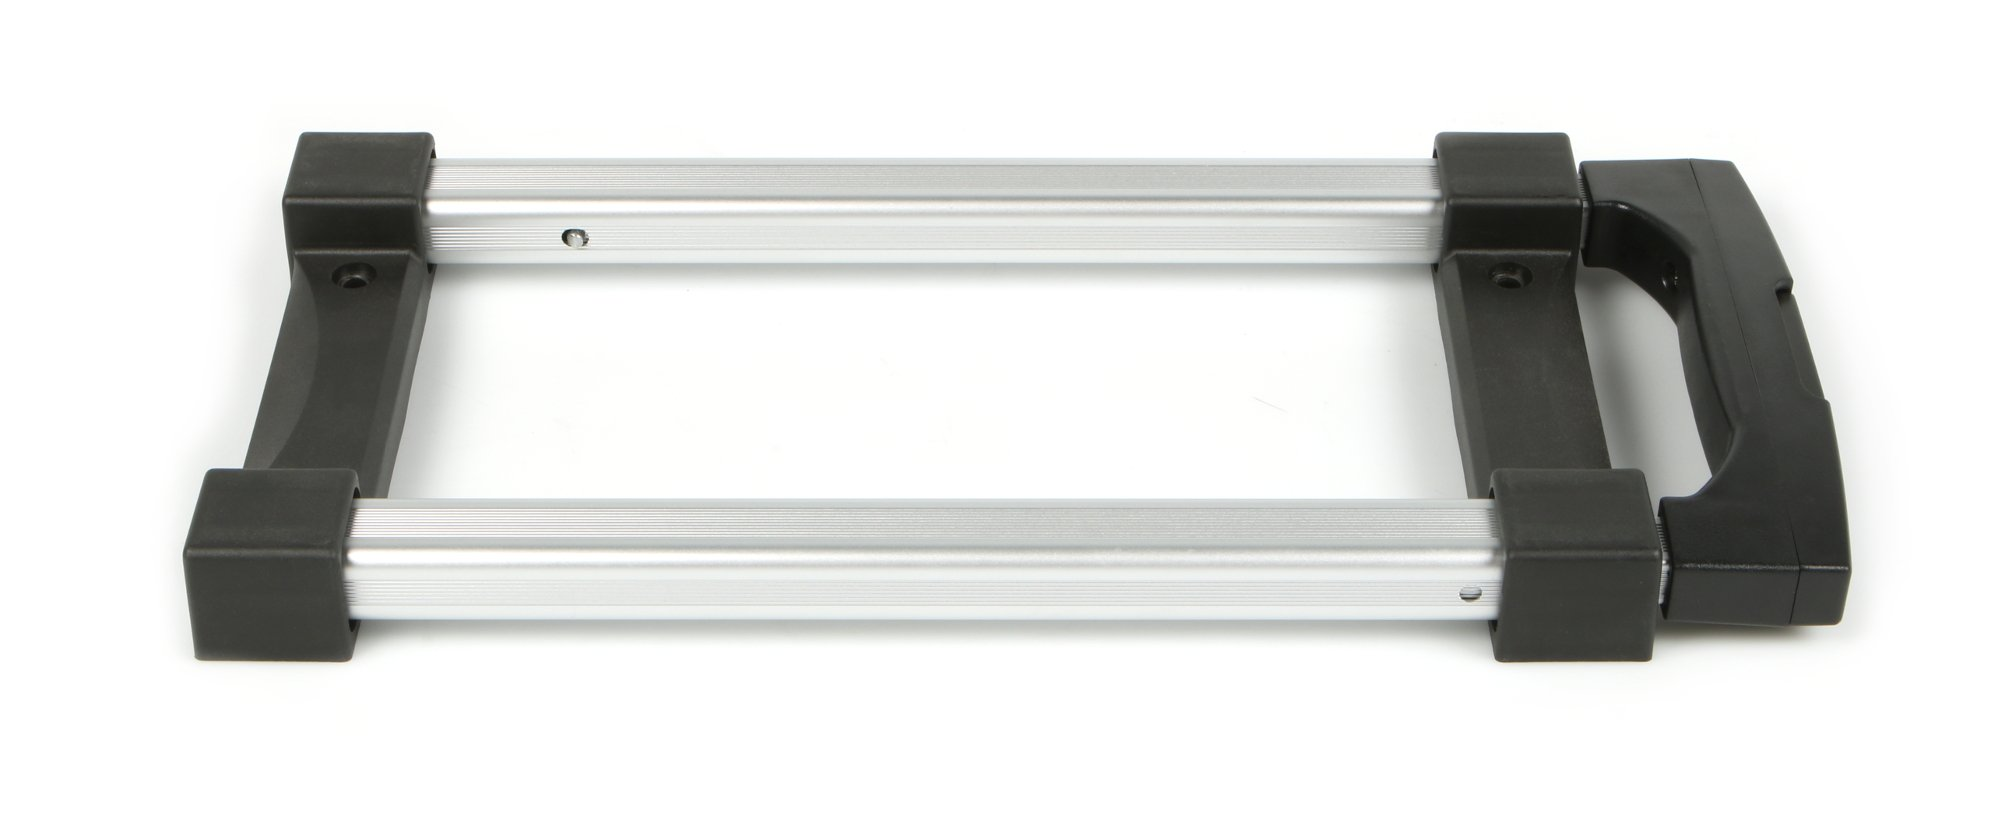 Handle Assembly with Rails for TransActive